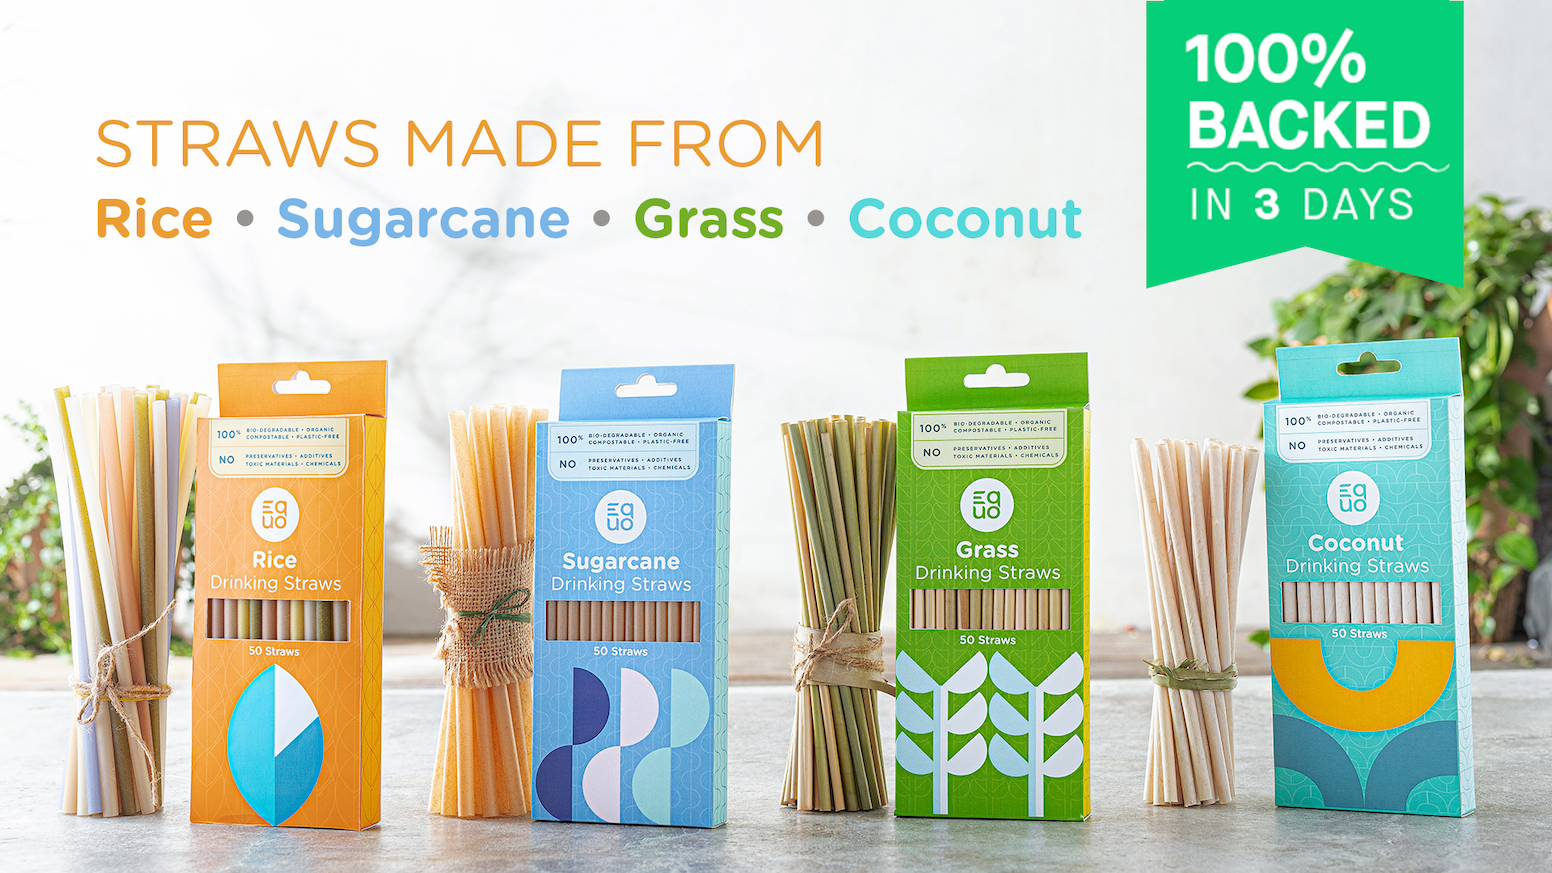 Made from Coconut, Sugarcane, Rice and Grass. Plastic-free, chemical-free, non-toxic and 100% biodegradable and compostable.